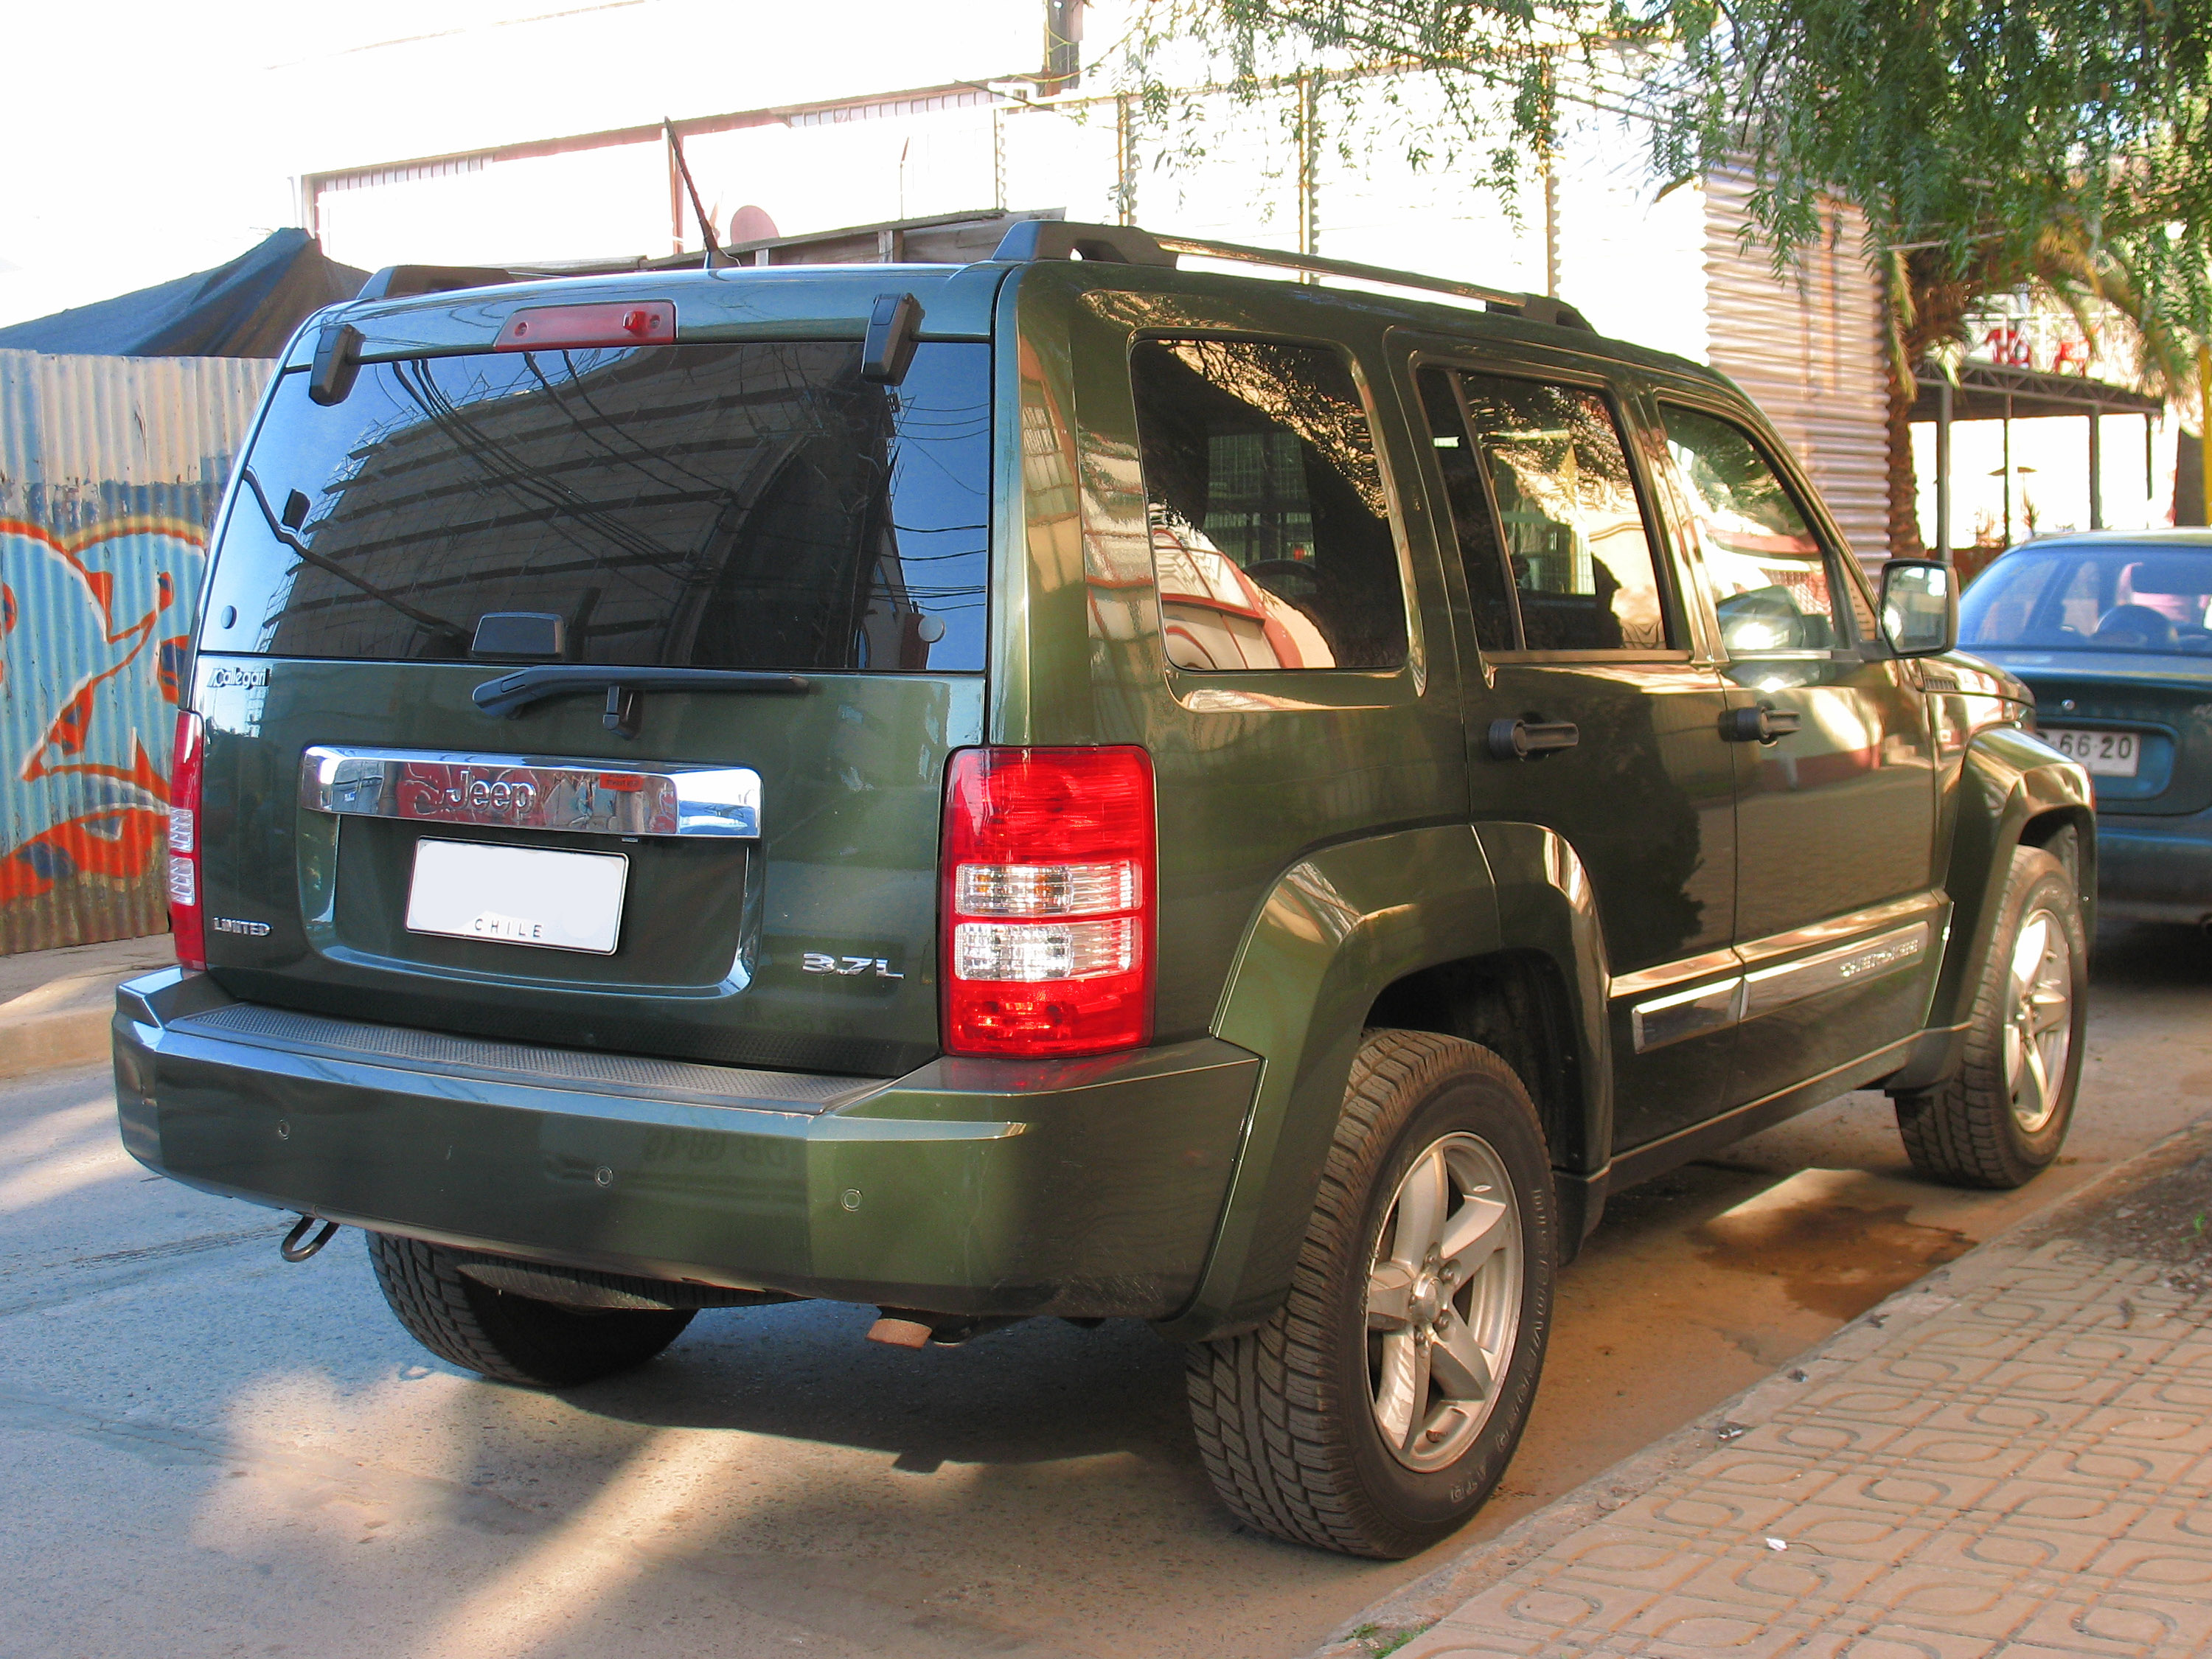 file:jeep cherokee liberty 3.7l limited 2009 (14475908335)